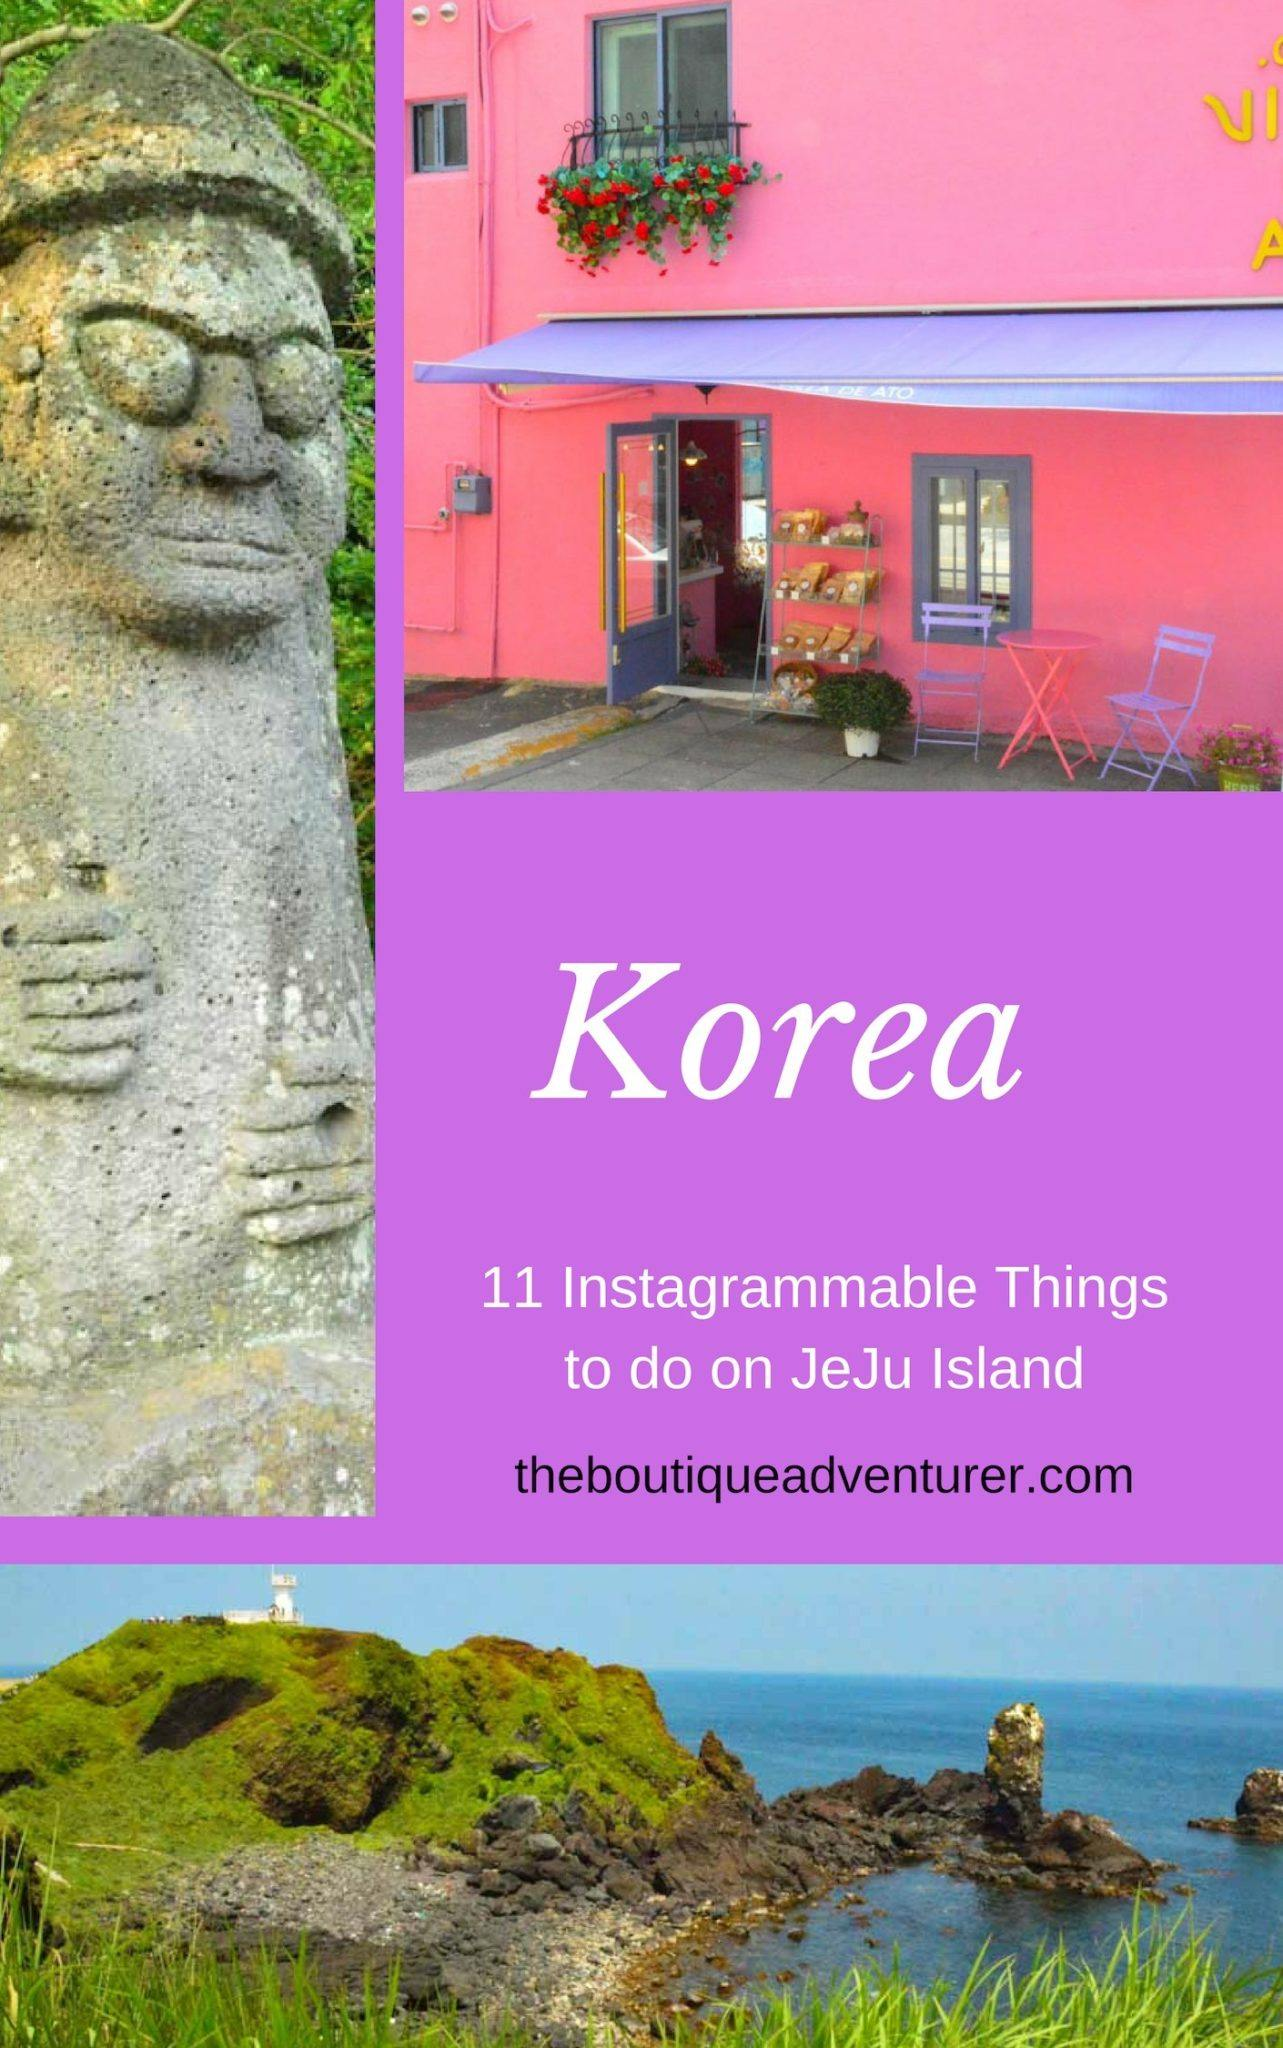 Here are the 11 Most Instagrammable Things to do in Jeju - from UNESCO listed Seongsan Ilchulbong to Korea's highest mountain Hallasan to Love Land!